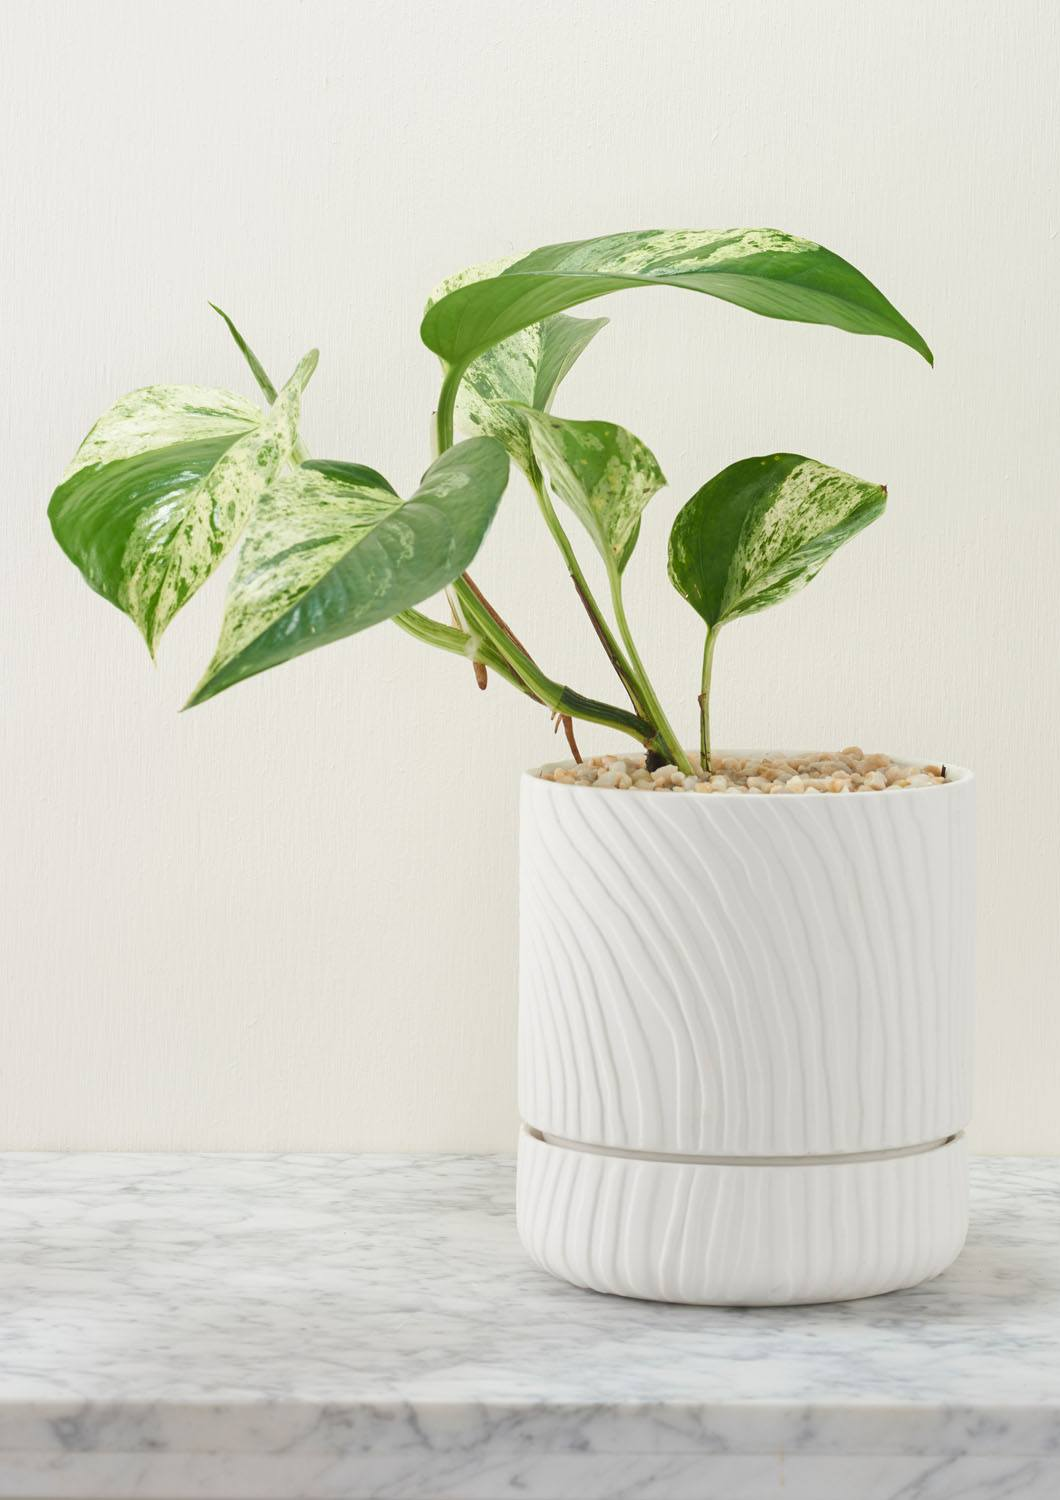 Angus & Celeste Abstract Relief Plant Pot - Brush Line Thin White Styled